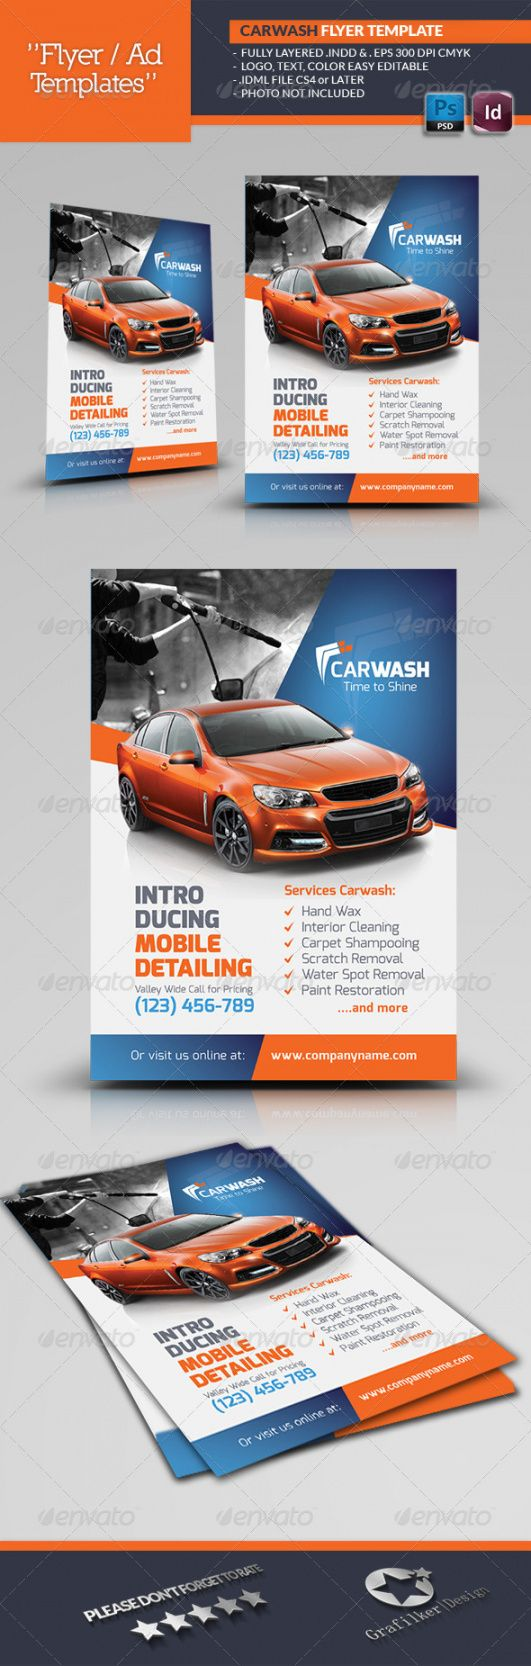 free car wash flyer graphics designs & templates from graphicriver mobile car wash flyer template and sample